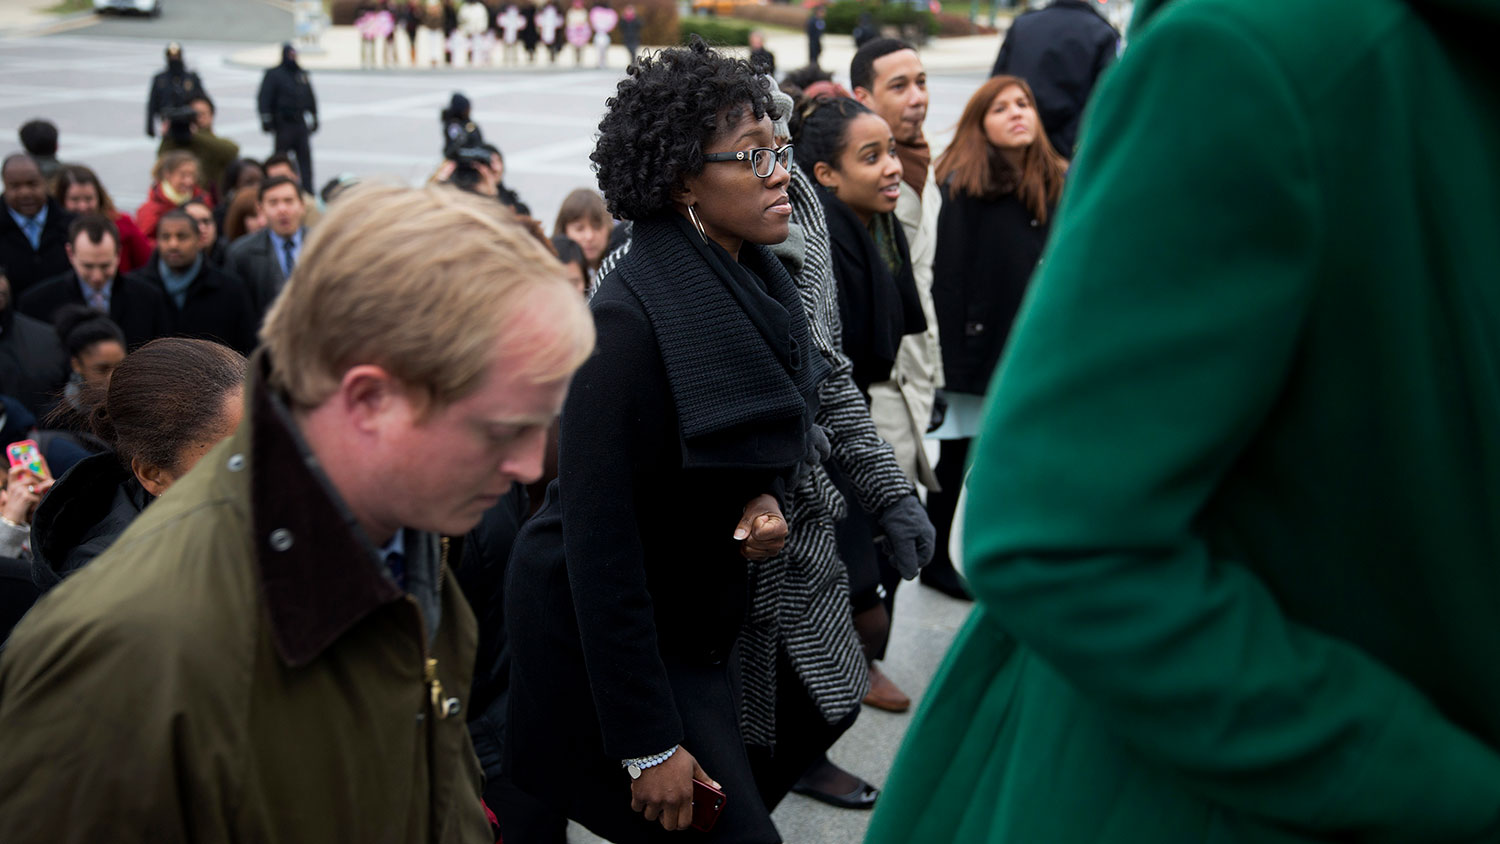 Congressional staff members walk up the U.S. Capitol steps during a protest in Washington on Dec. 11, 2014.